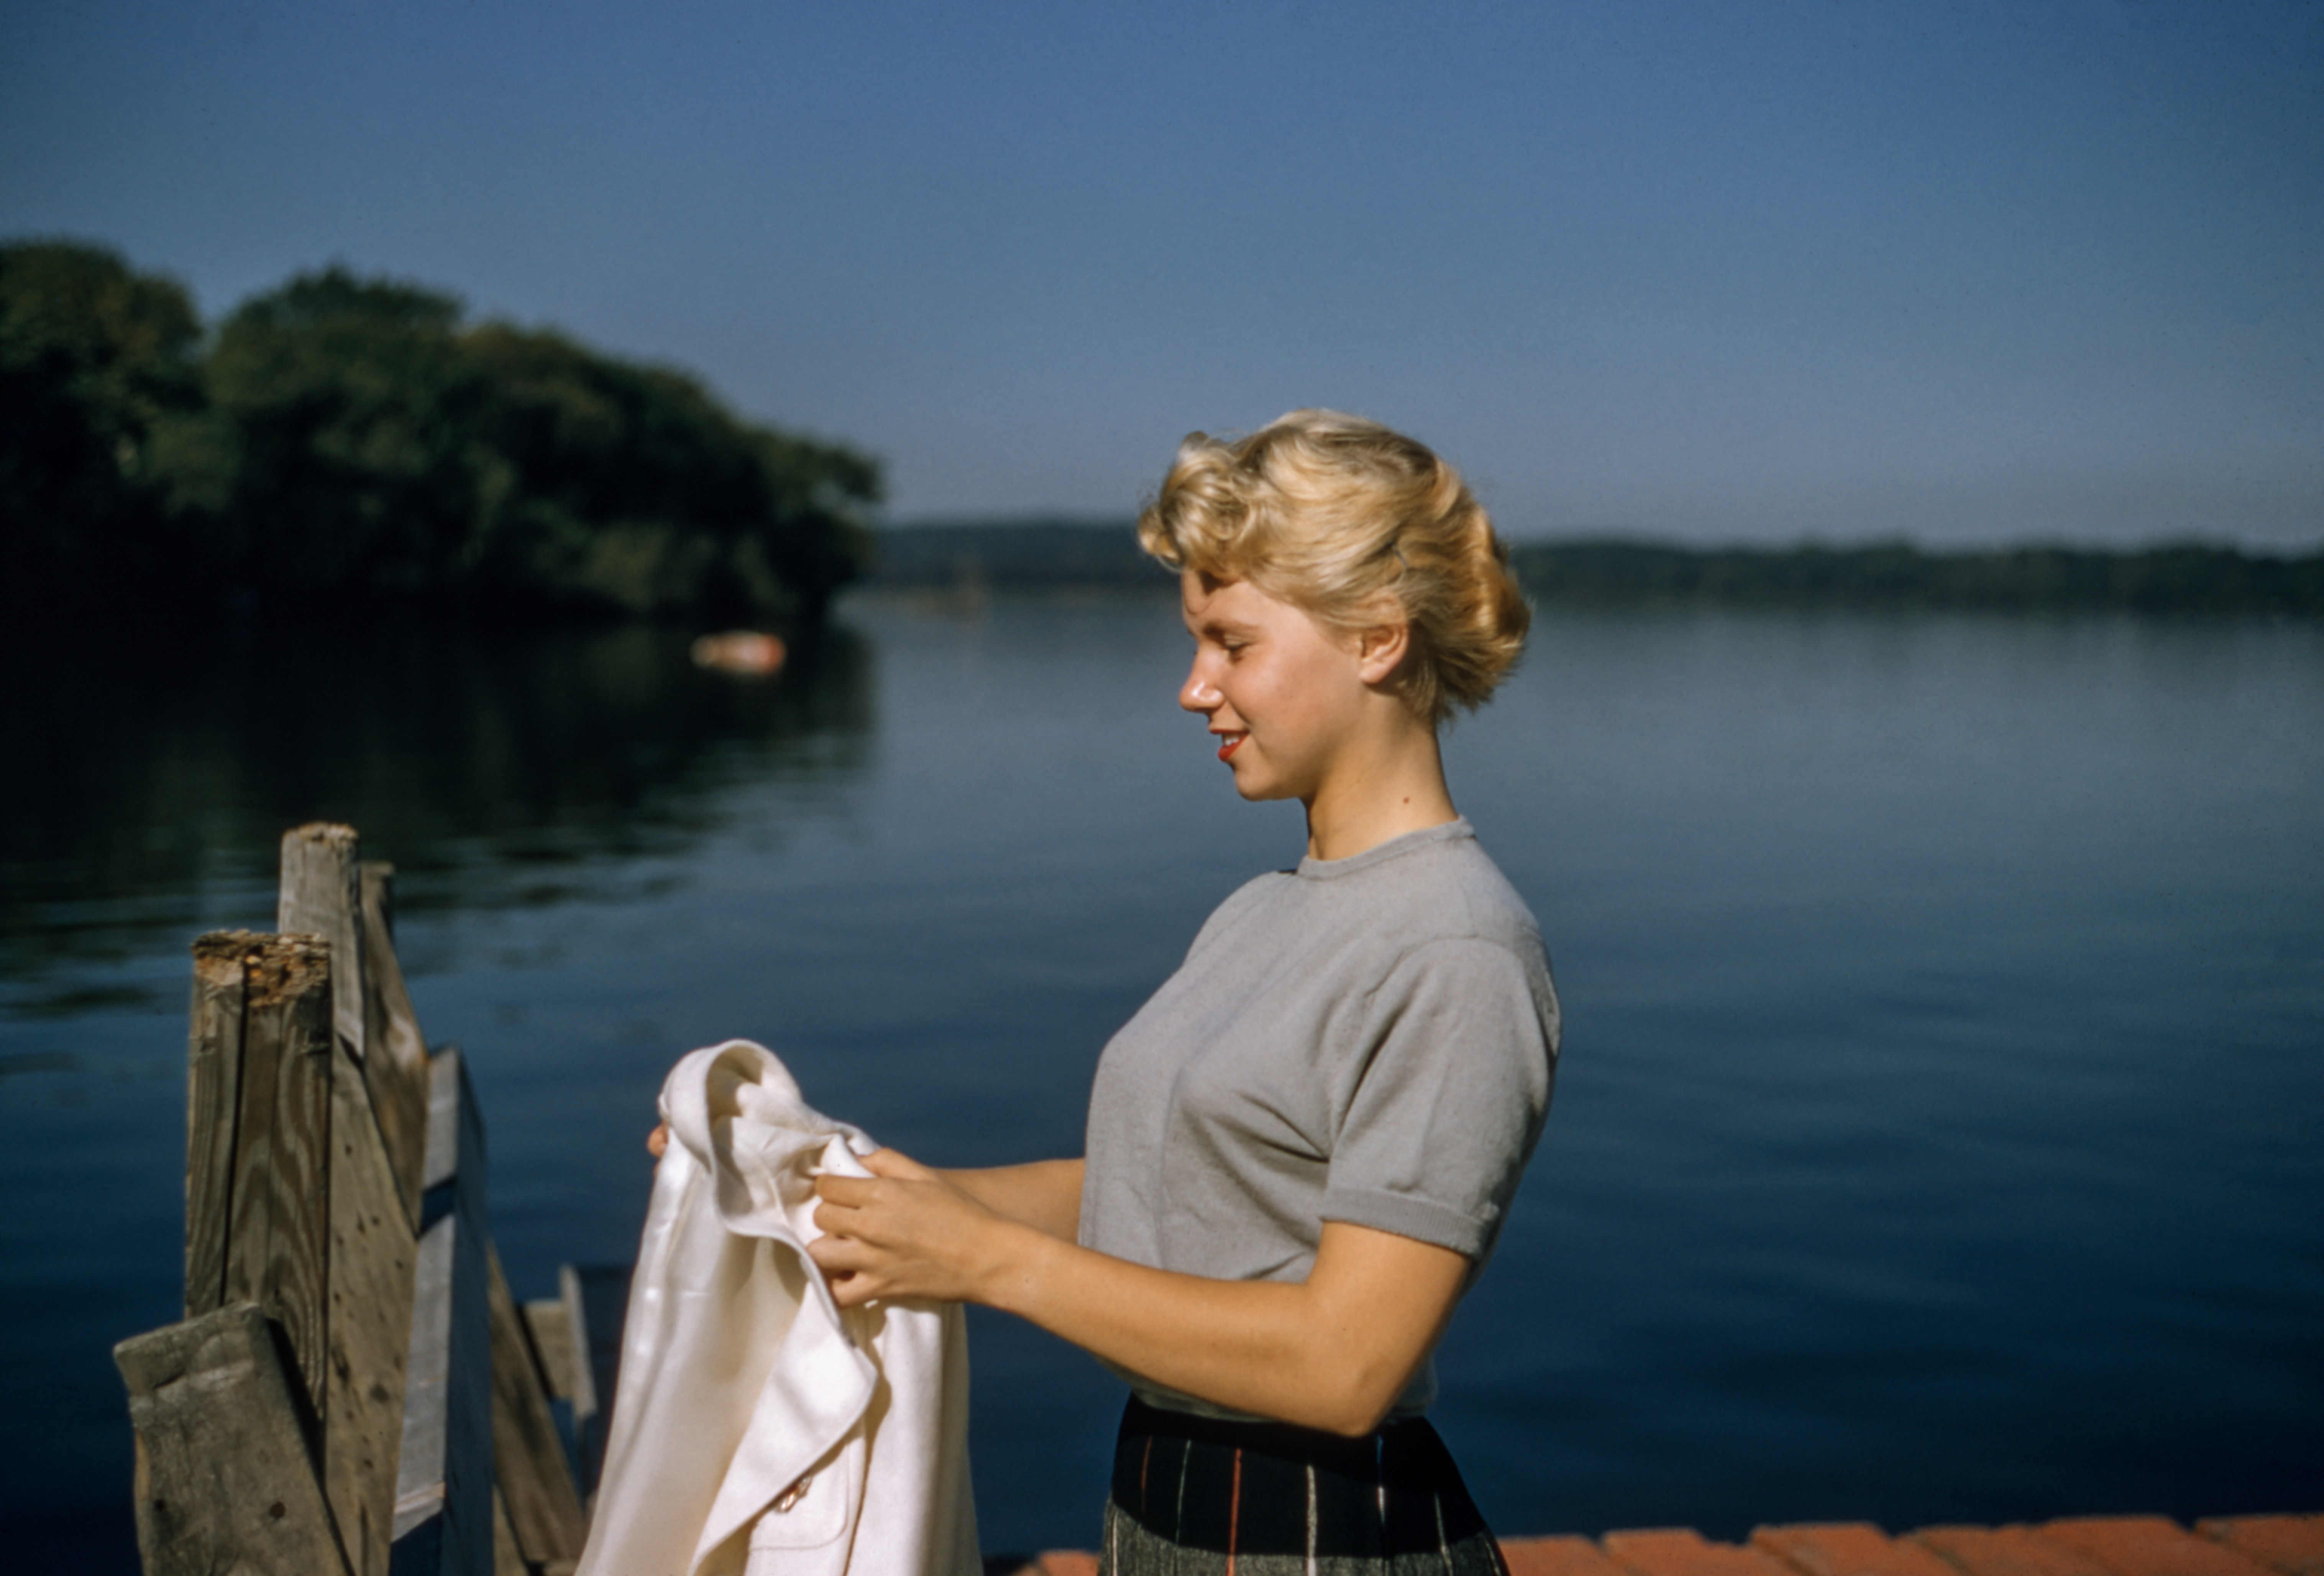 Woman with a vintage updo hairstyle holding a jacket by the lake